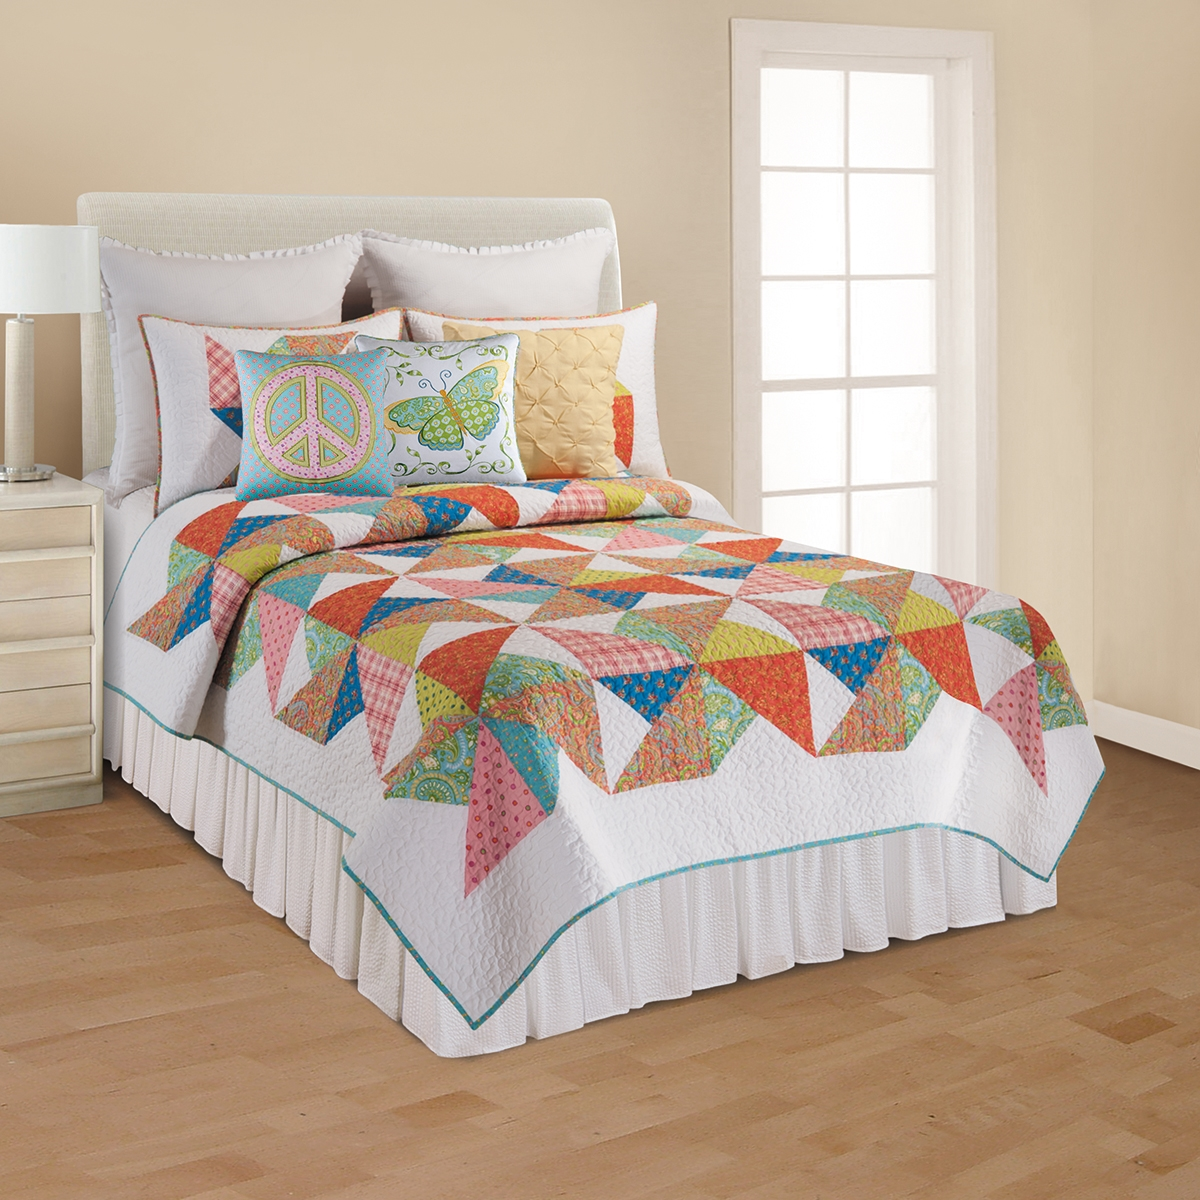 quilt quilts luke fallon queen bedding w c enterprises p l x f full by co